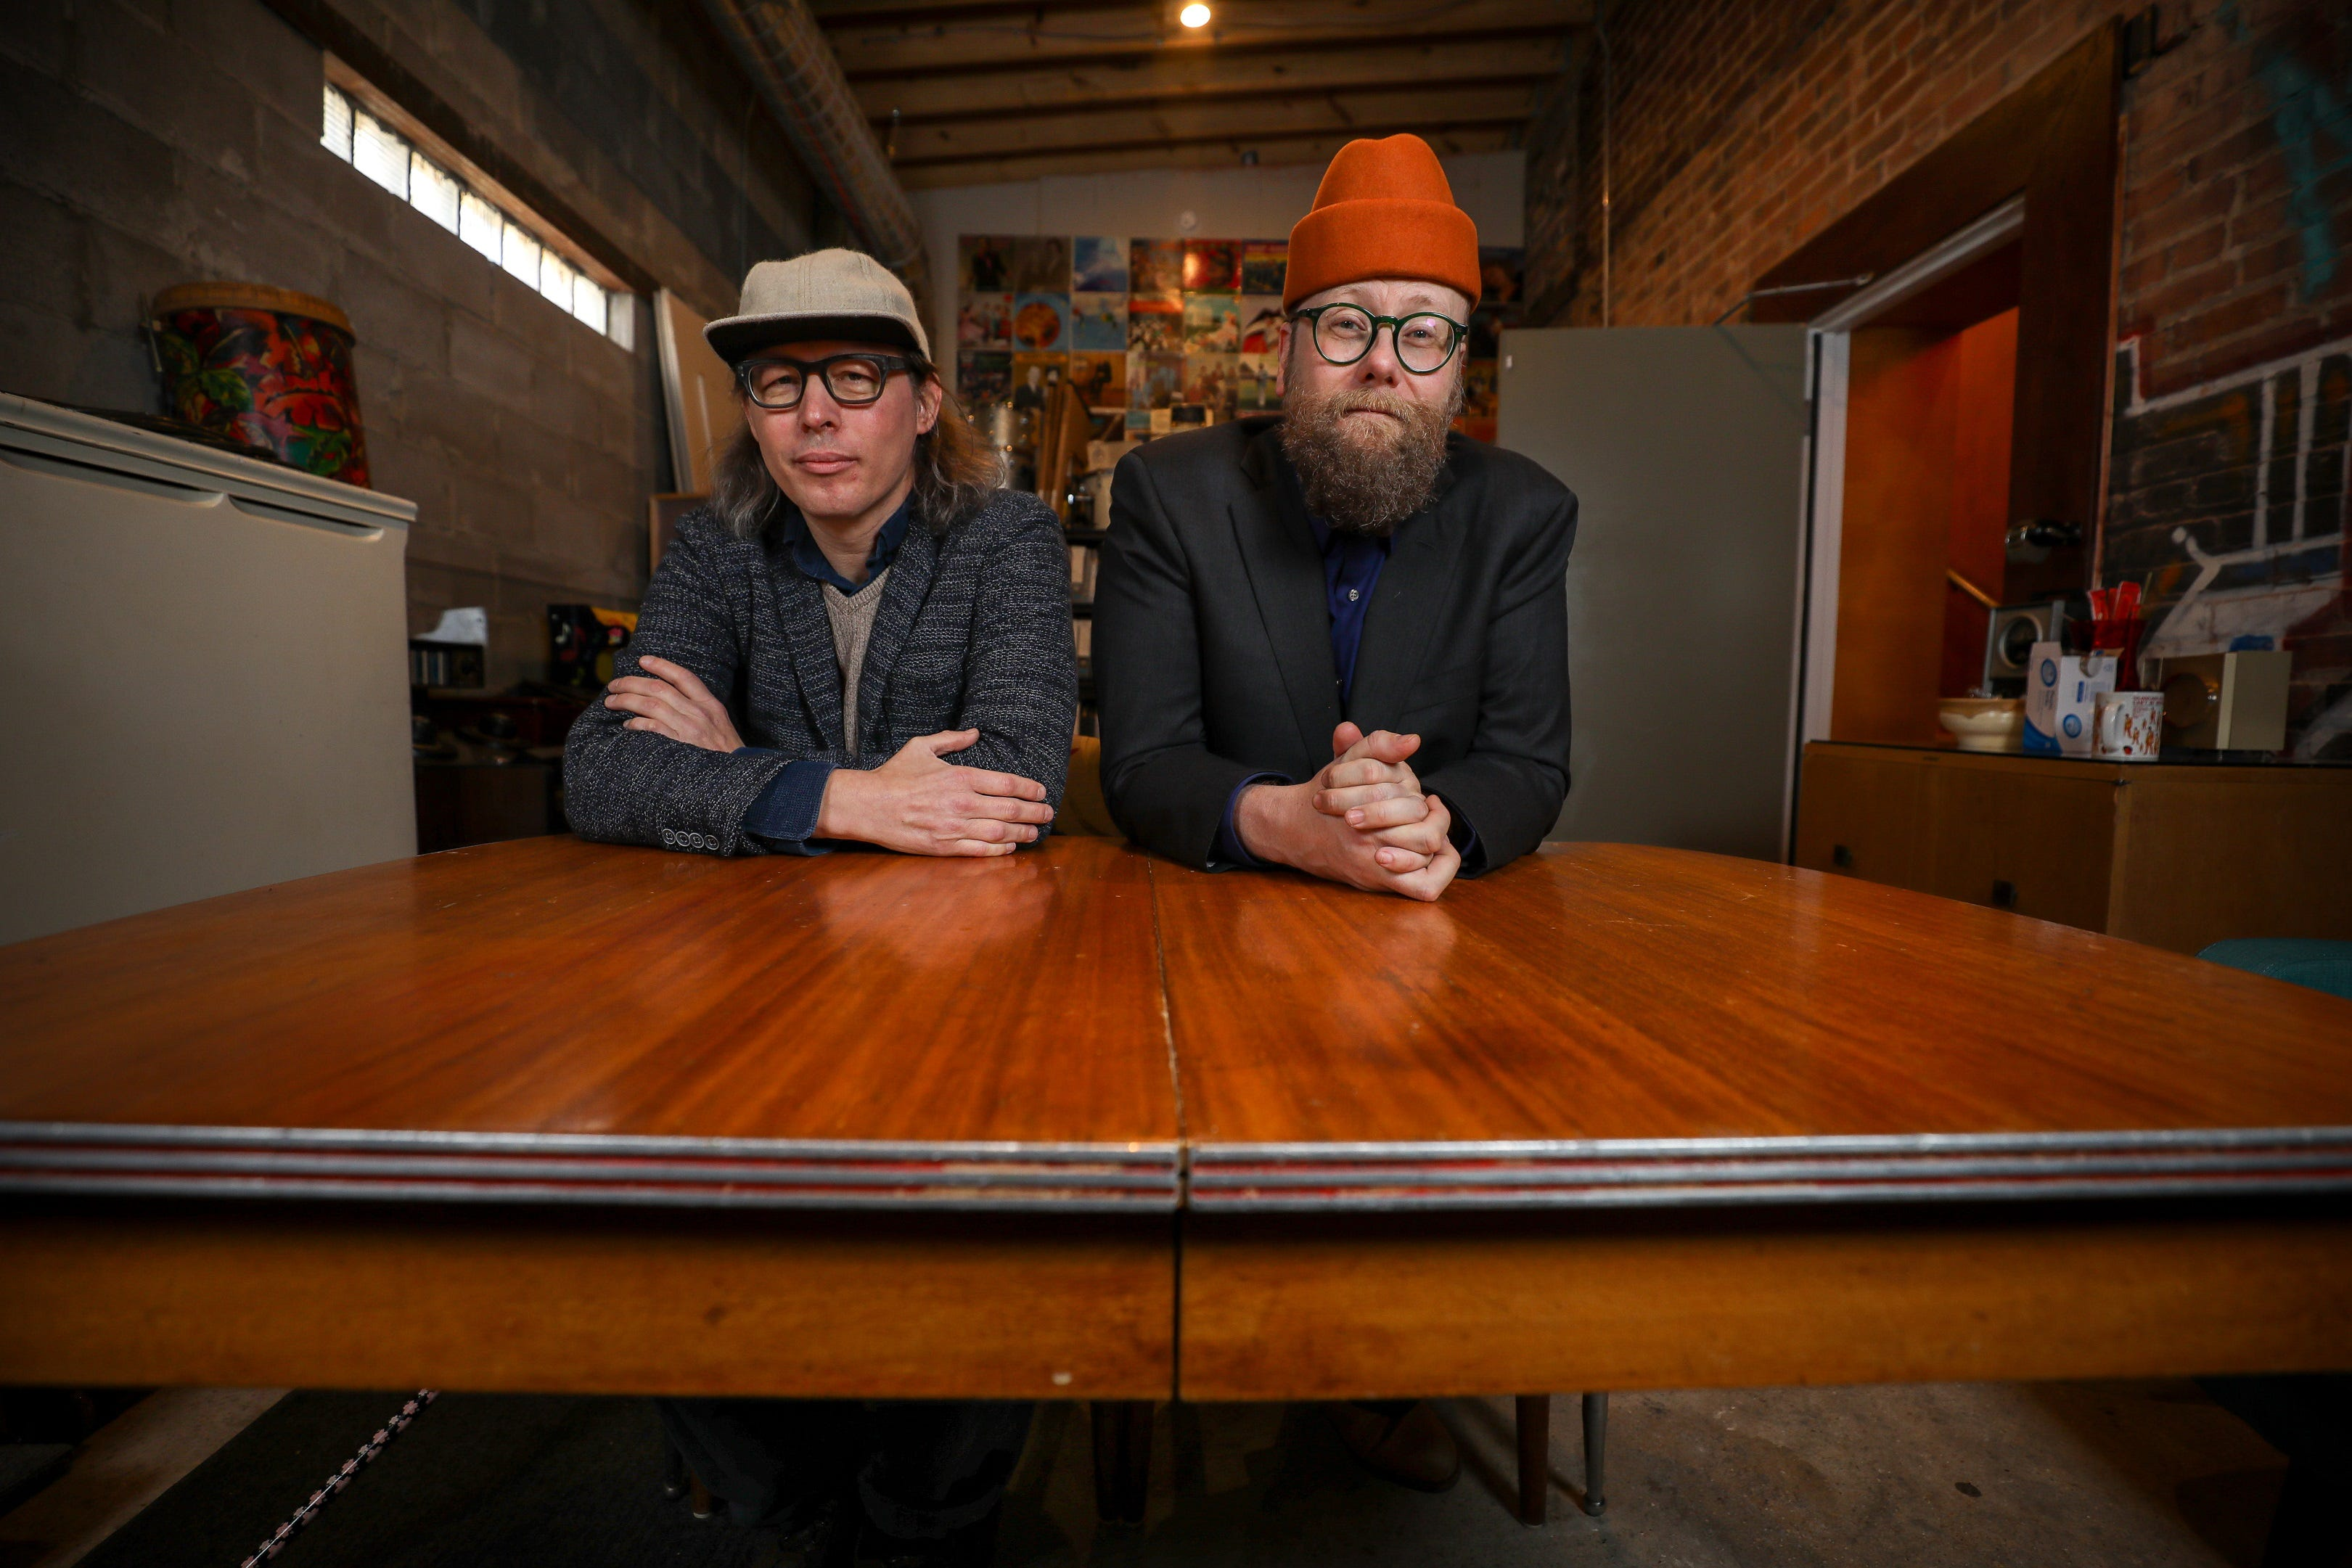 Soul Coughing's Mike Doughty prepares new Ghost of Vroom release